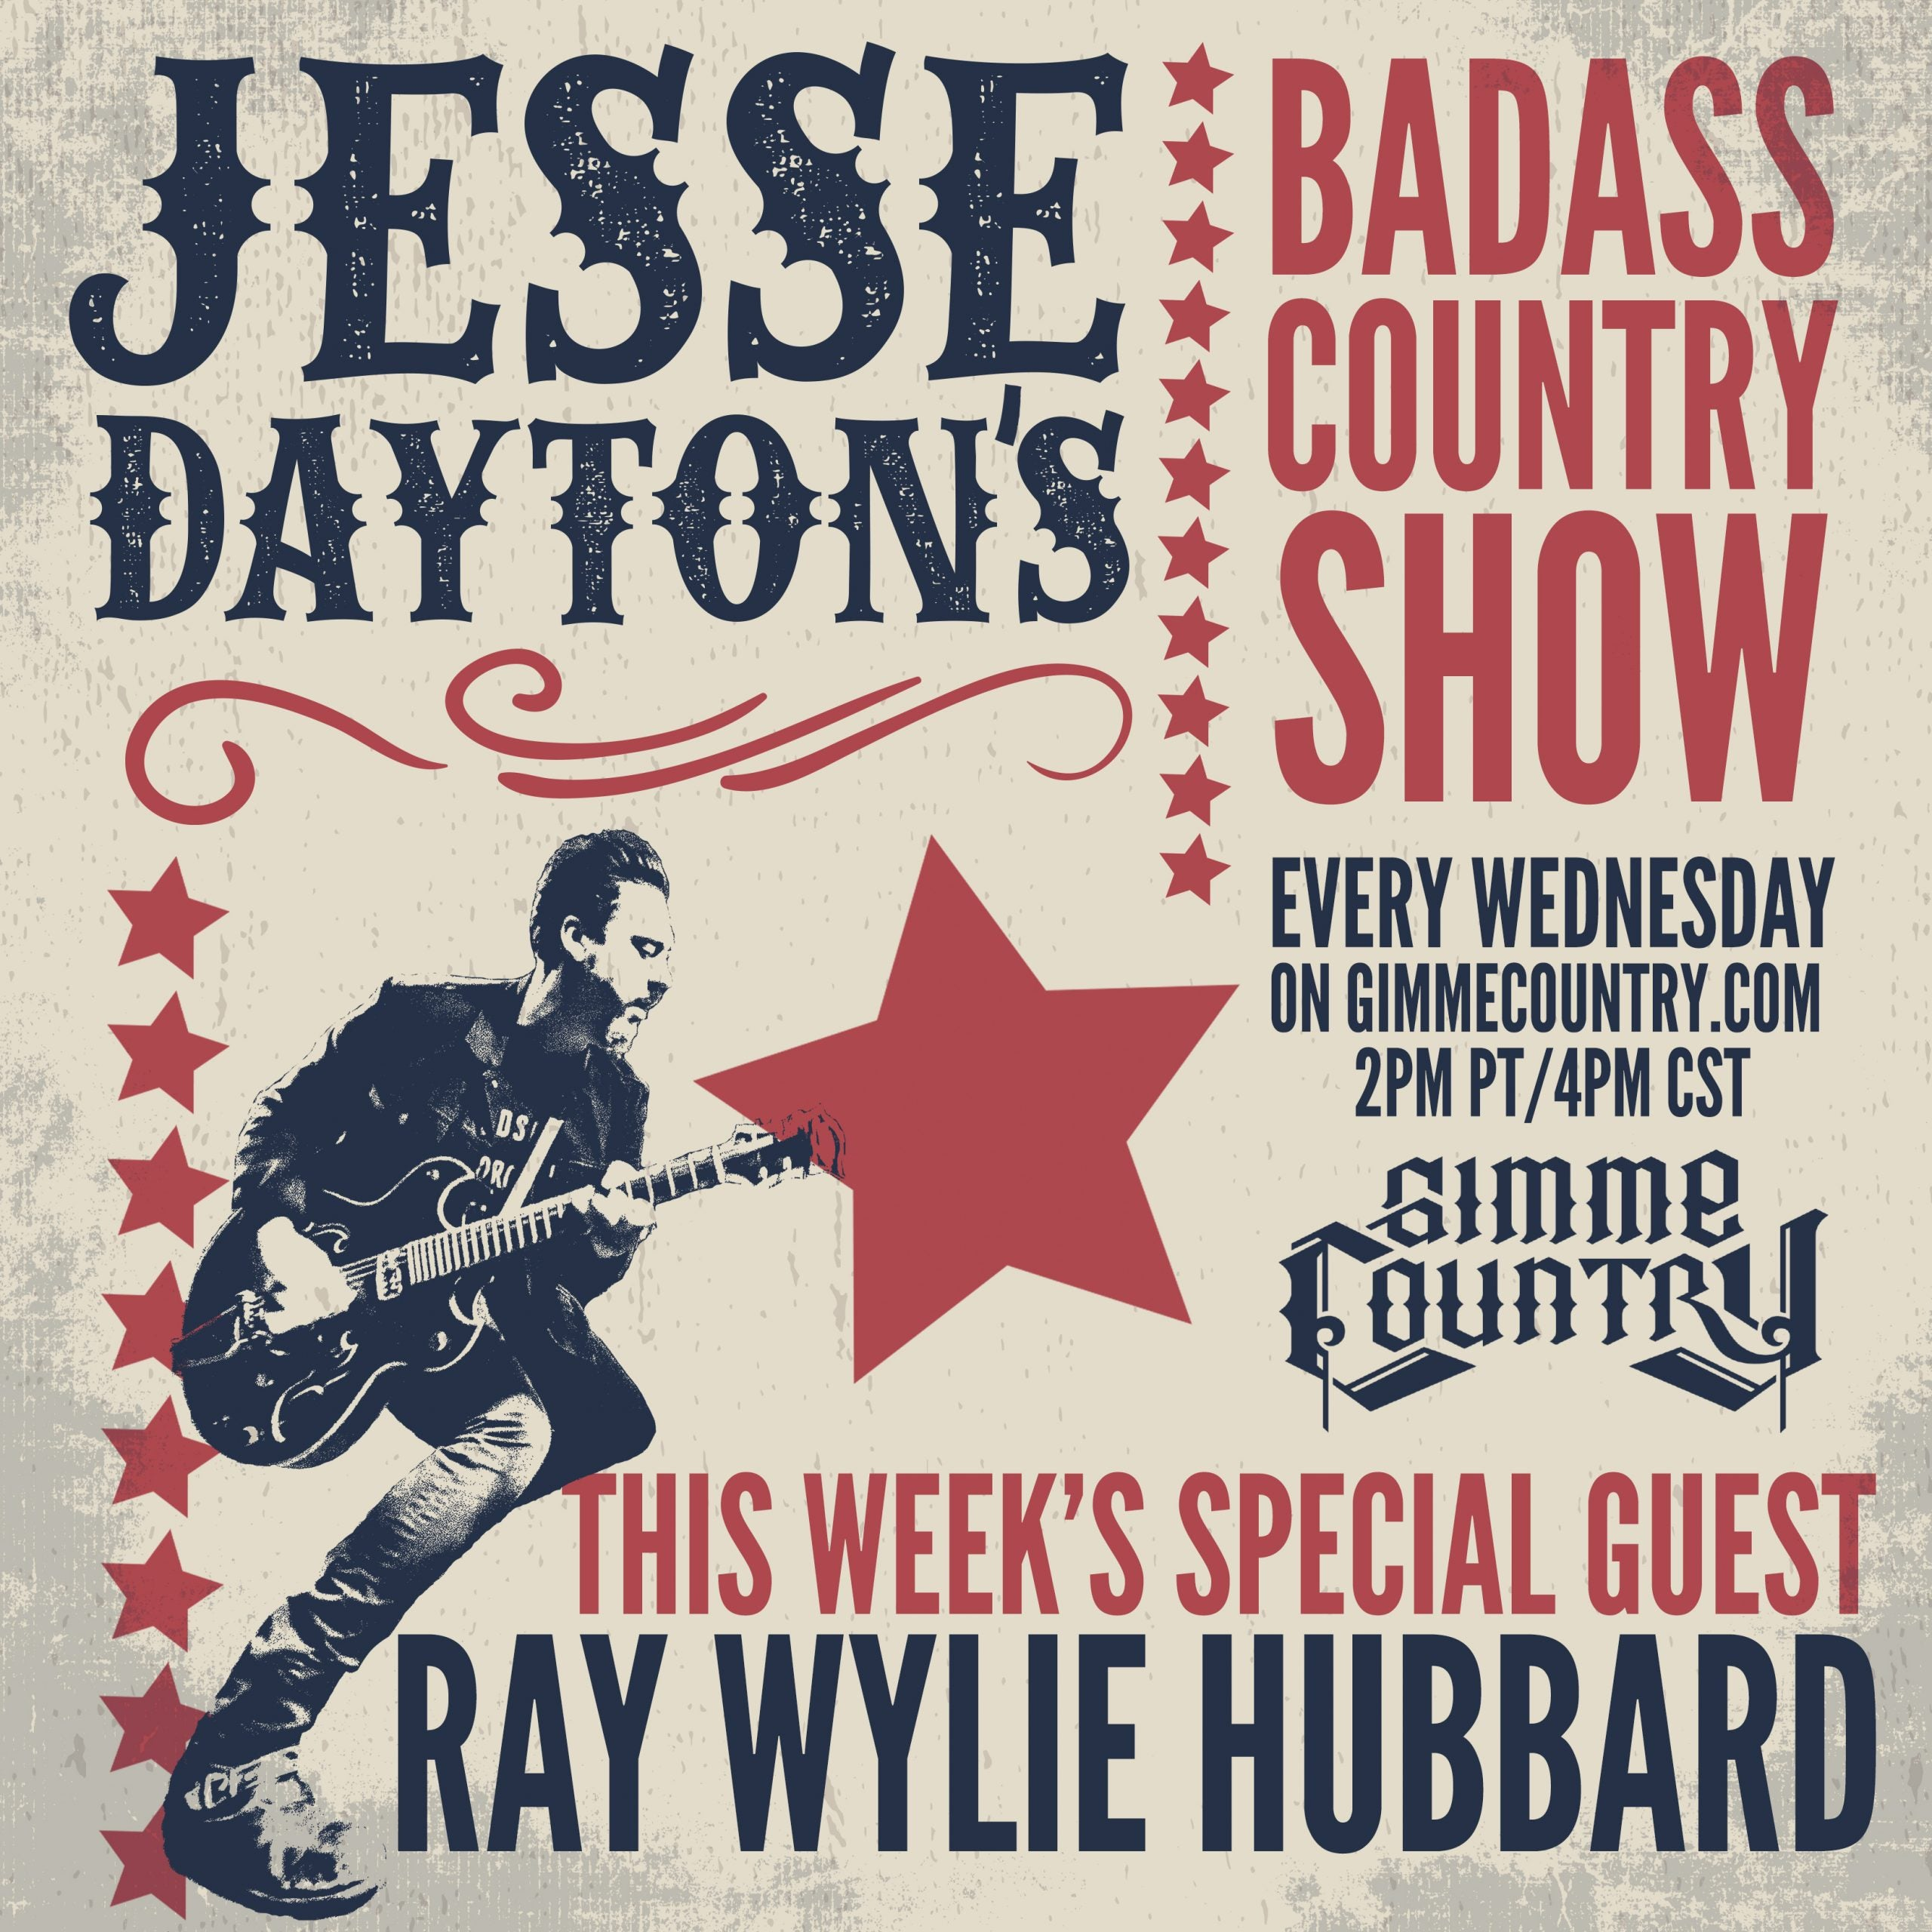 Jesse Daytons Badass Country Show on Gimme Country